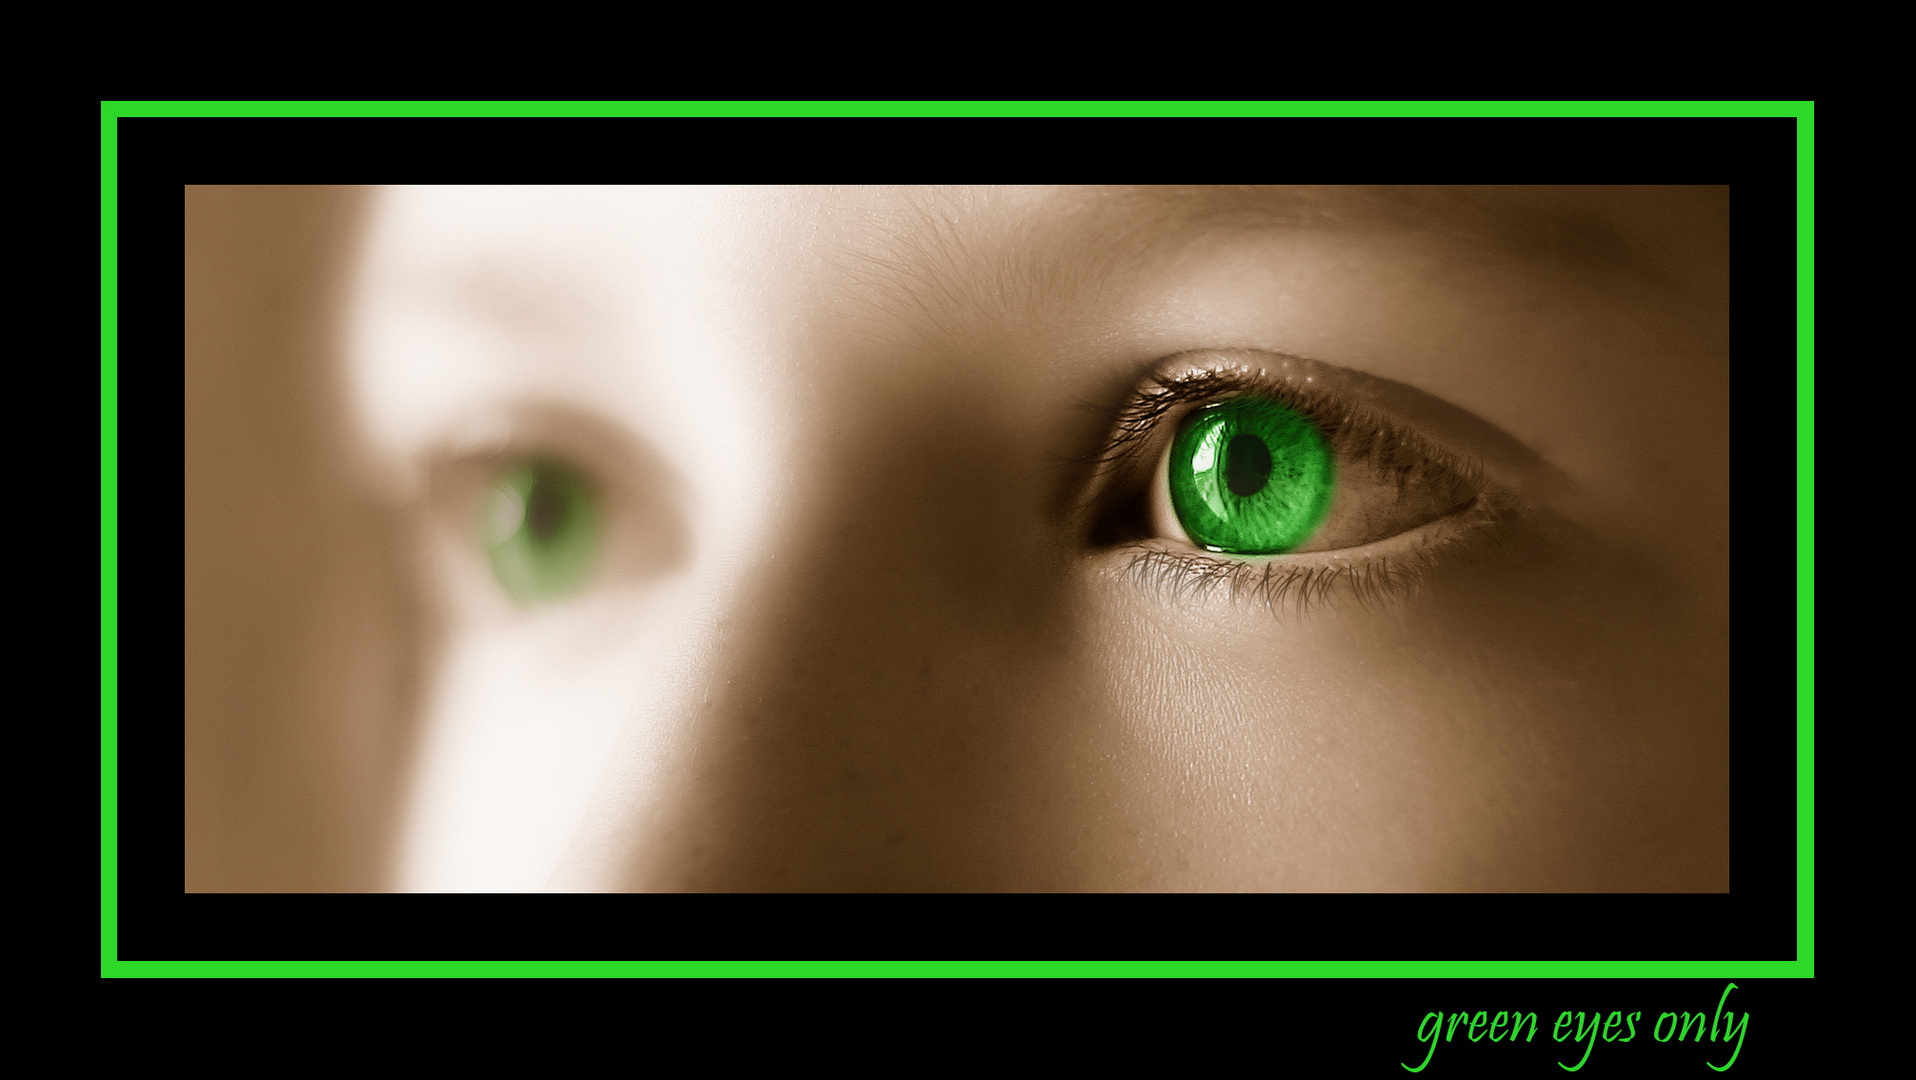 Green eyes only